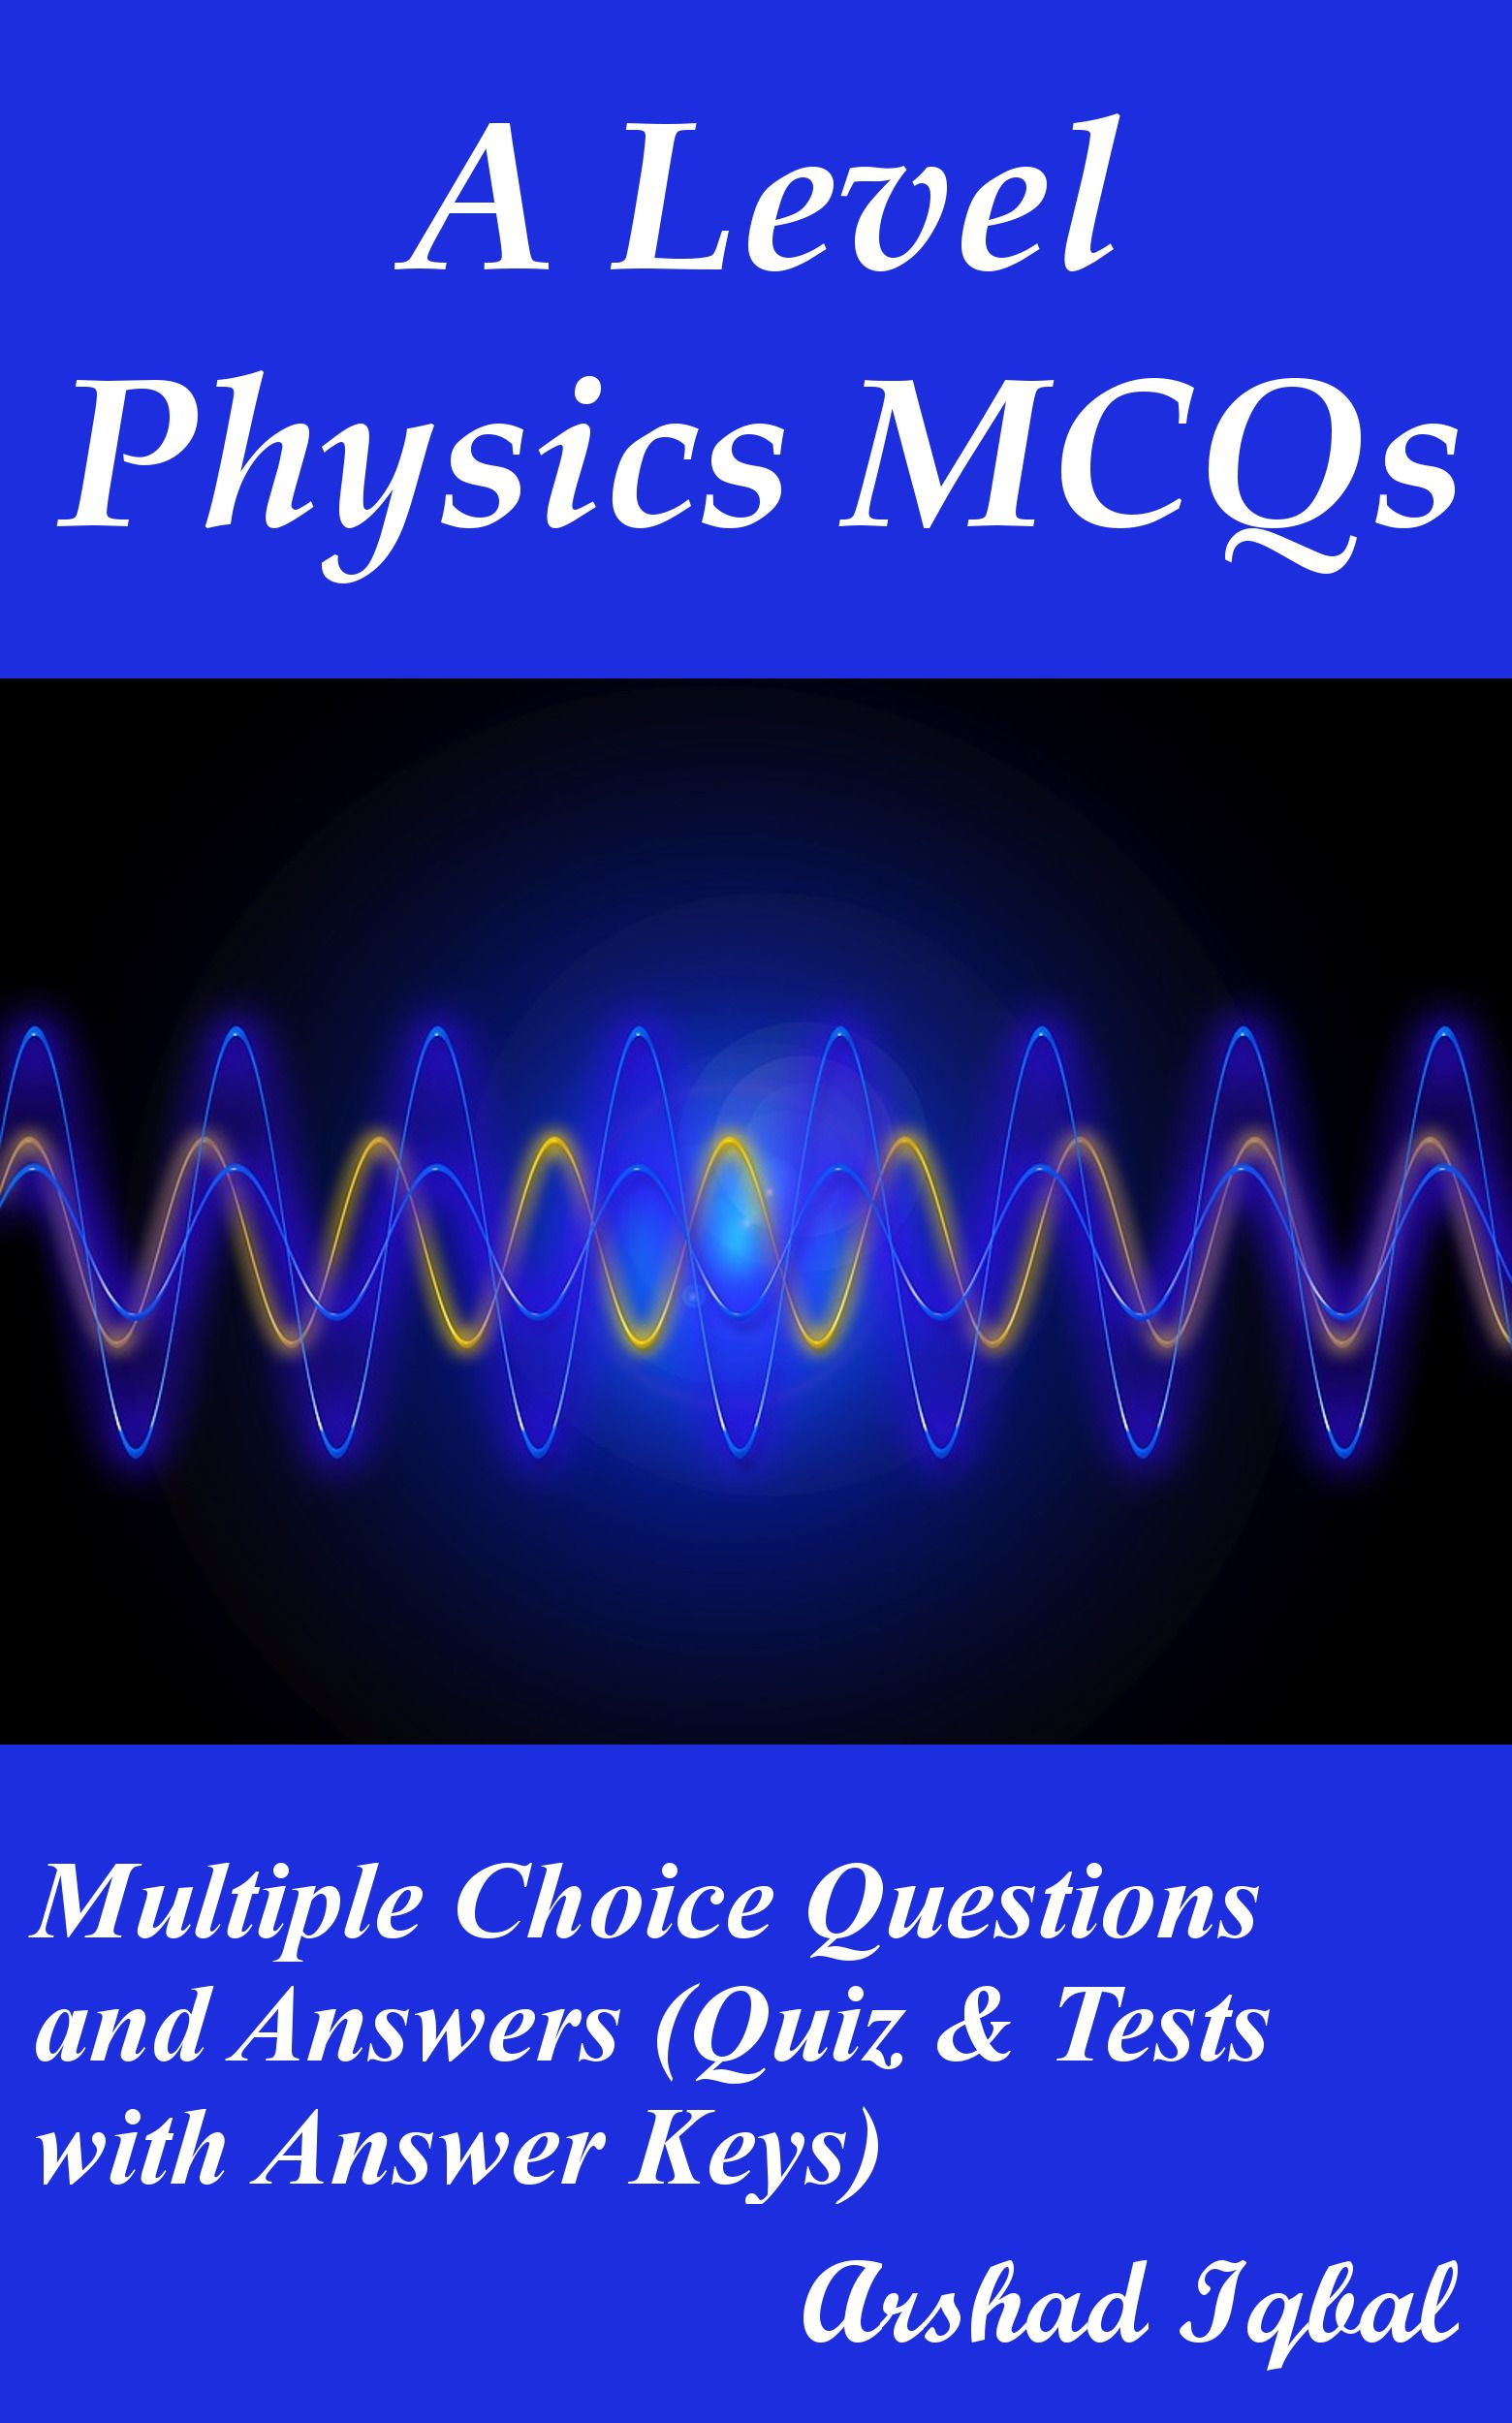 A level physics MCQs has 668 multiple choice questions  GCE physics